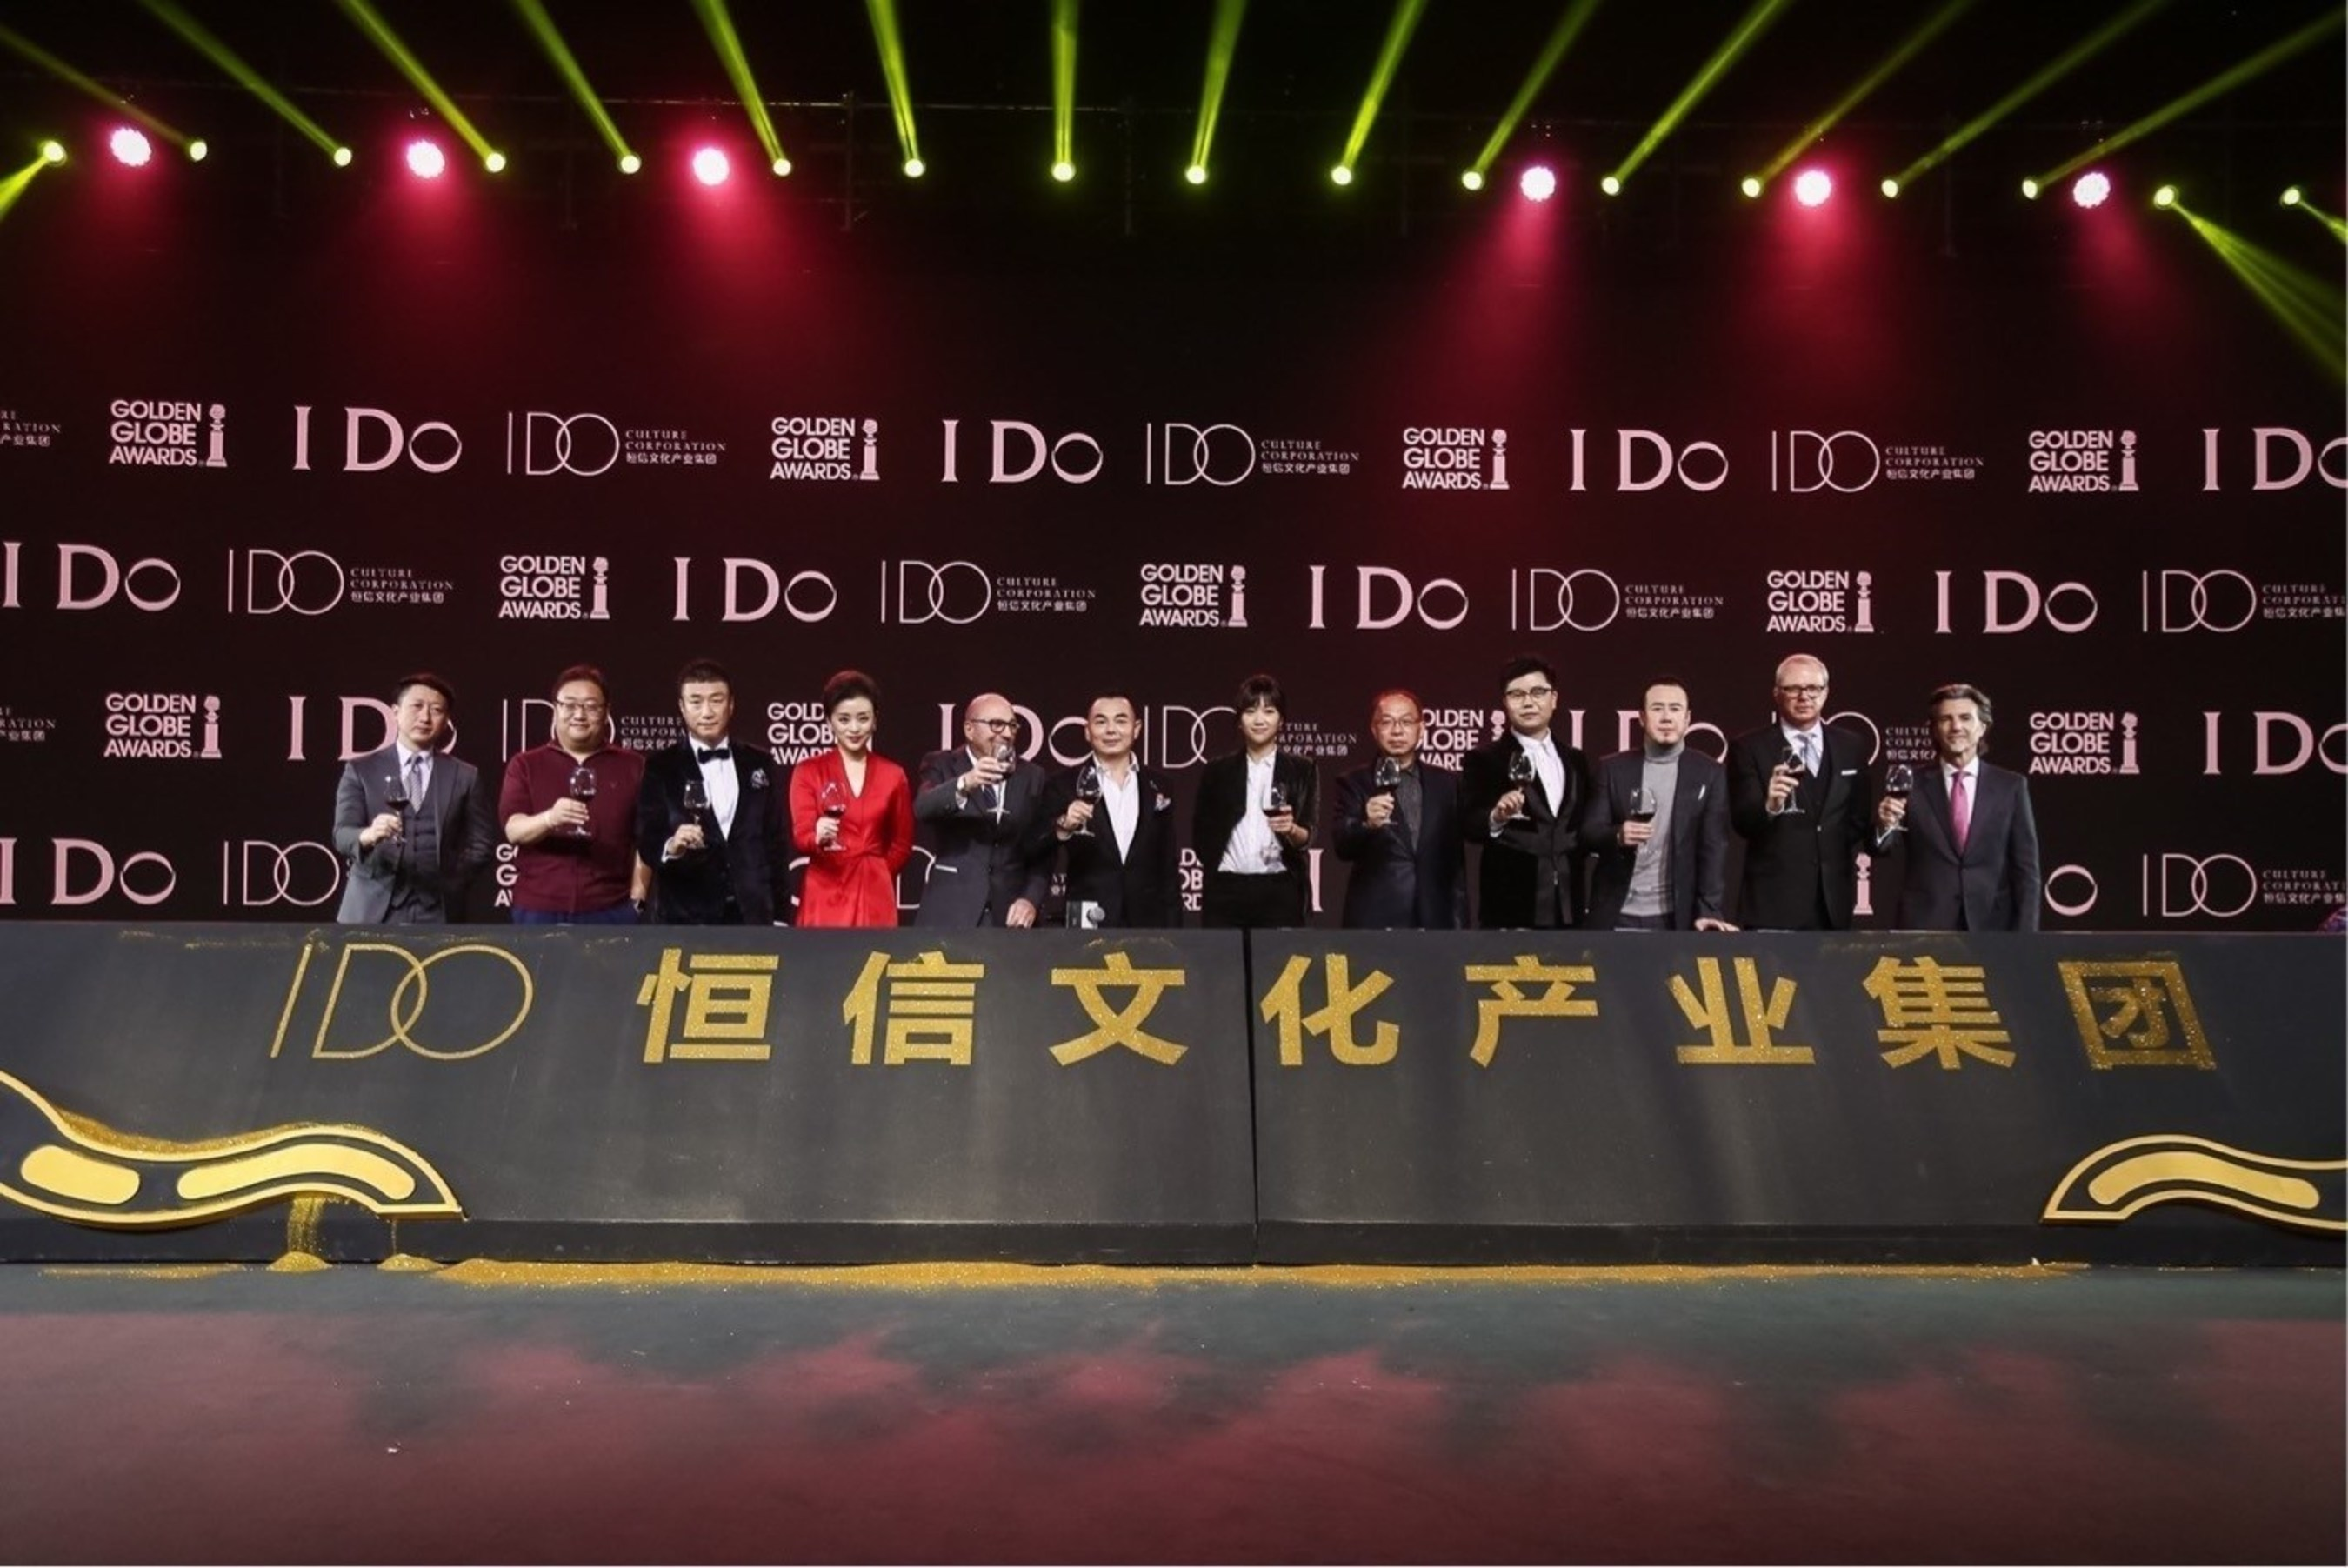 HIERSUN Launches I DO Culture Corporation, Building New Ecosystem with Hollywood in the Industry